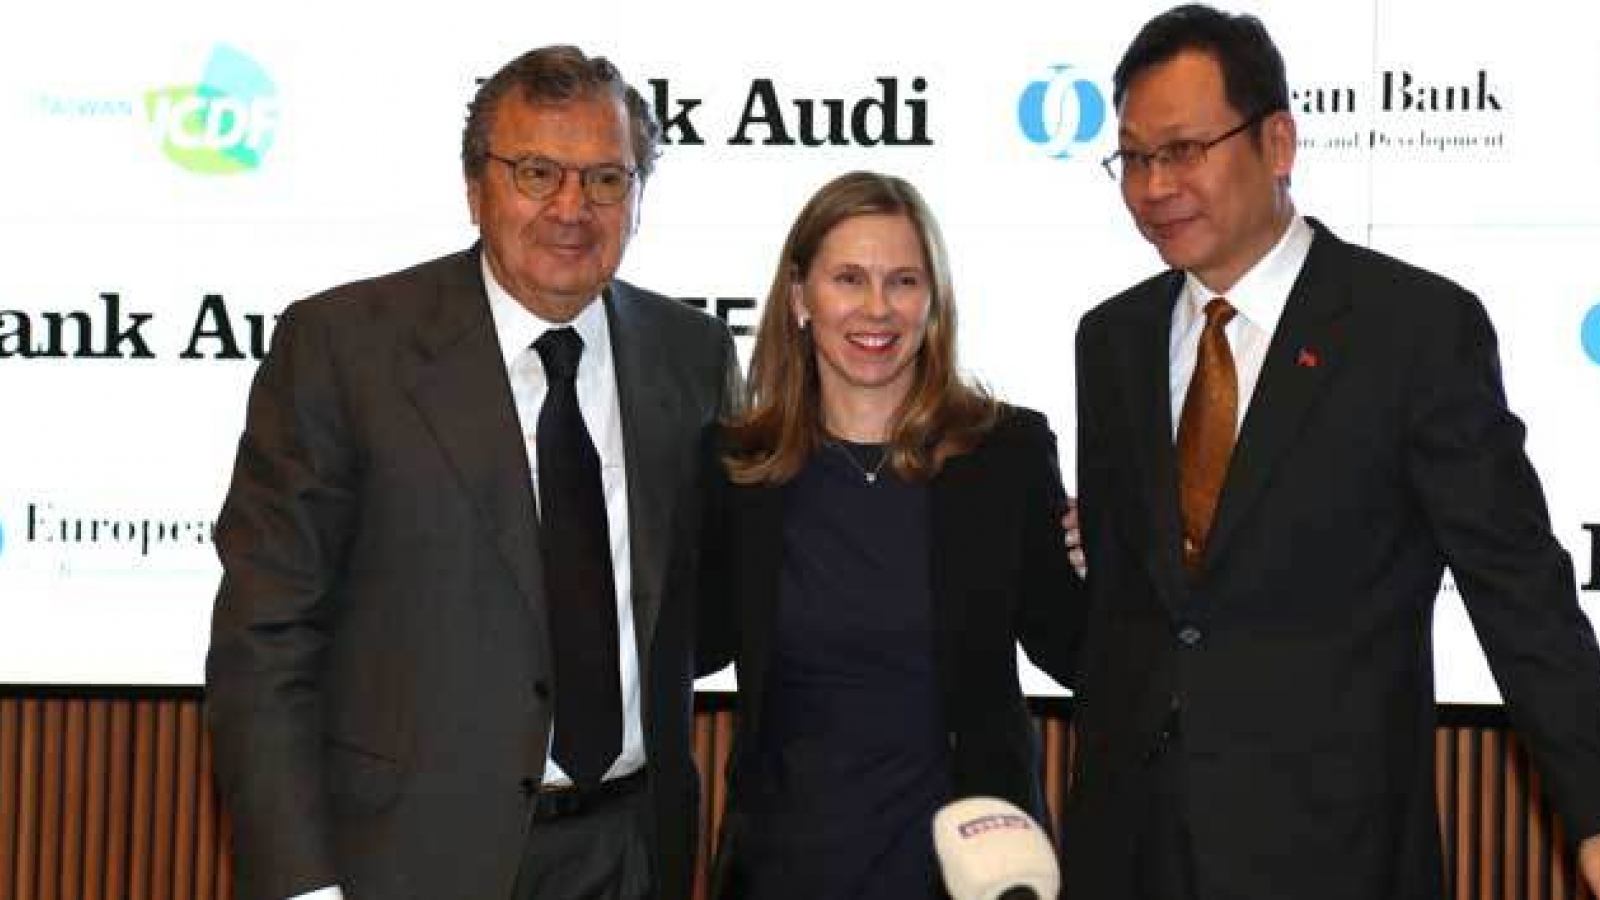 Samir Hanna of Bank Audi, Gretchen Biery of EBRD, Ismael Mae of TaiwanICDF